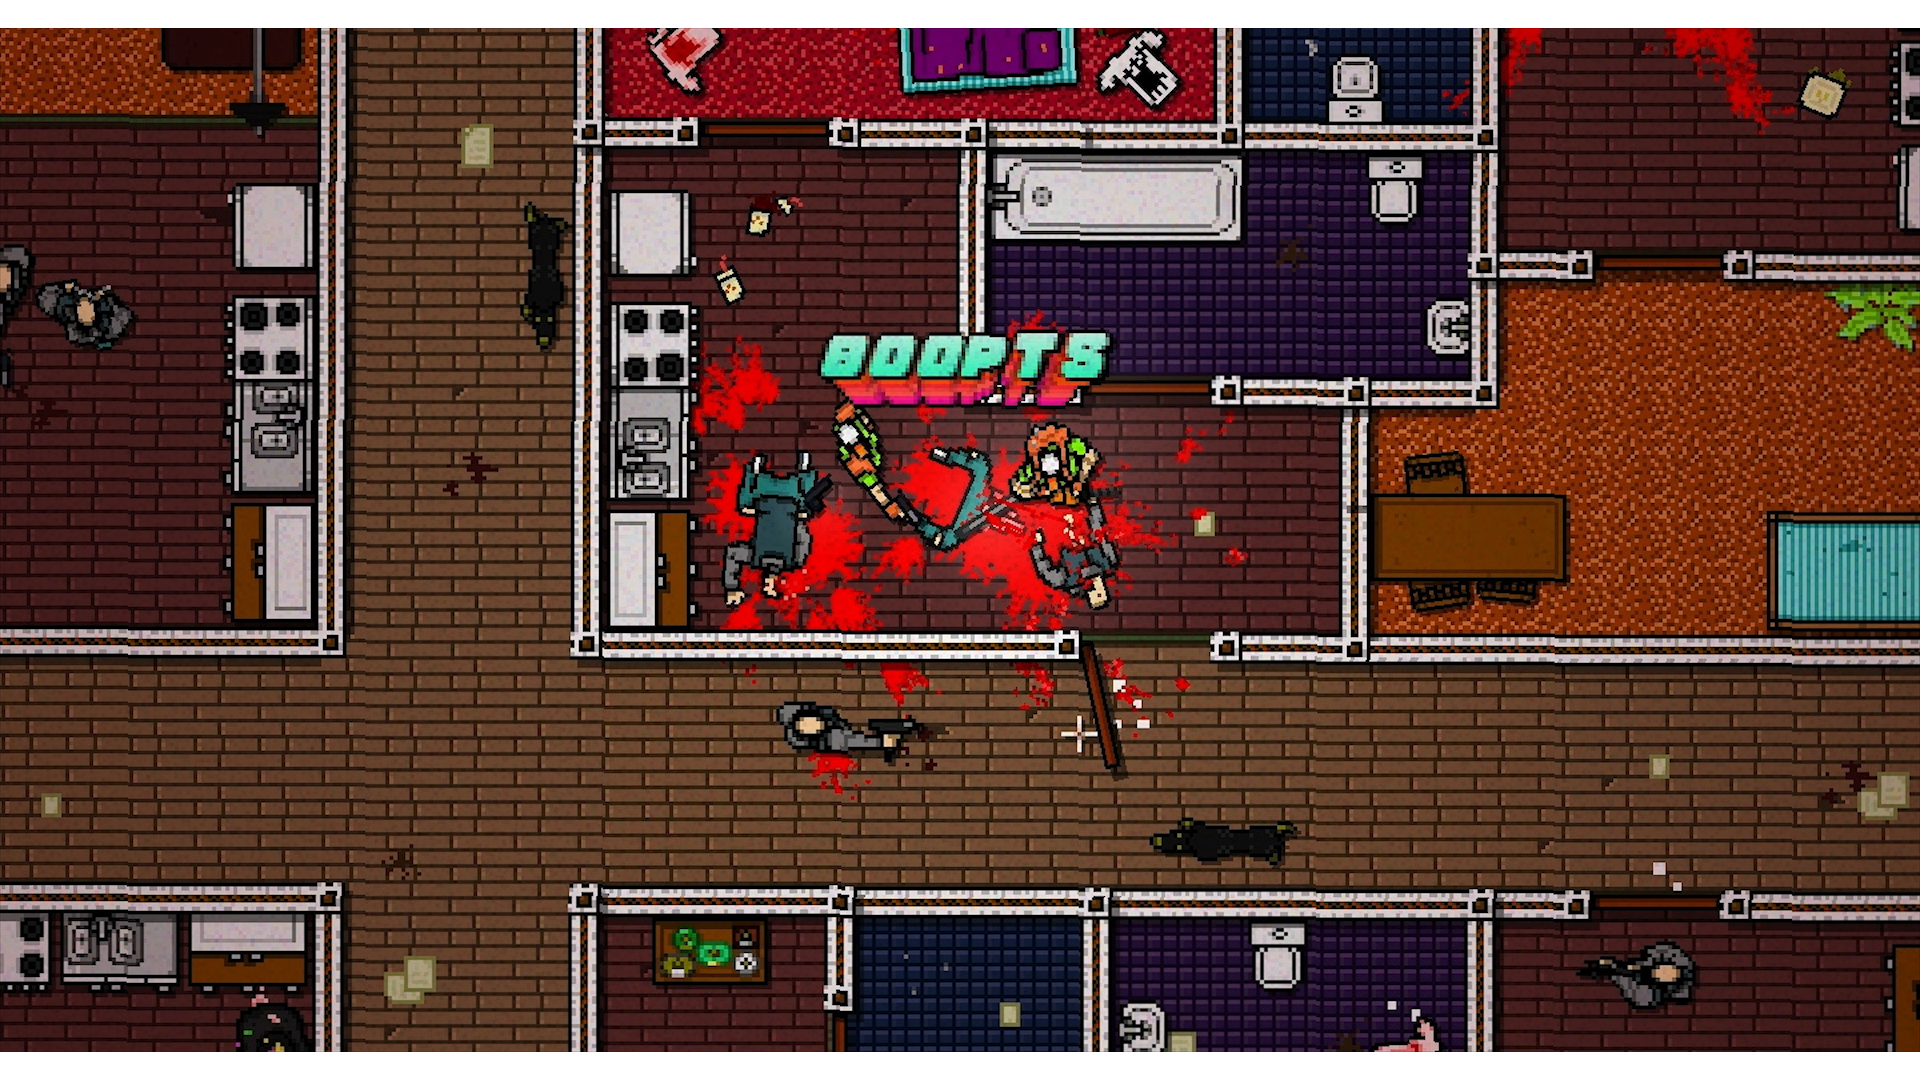 Hotline_Miami_2_-_Screen_3.png